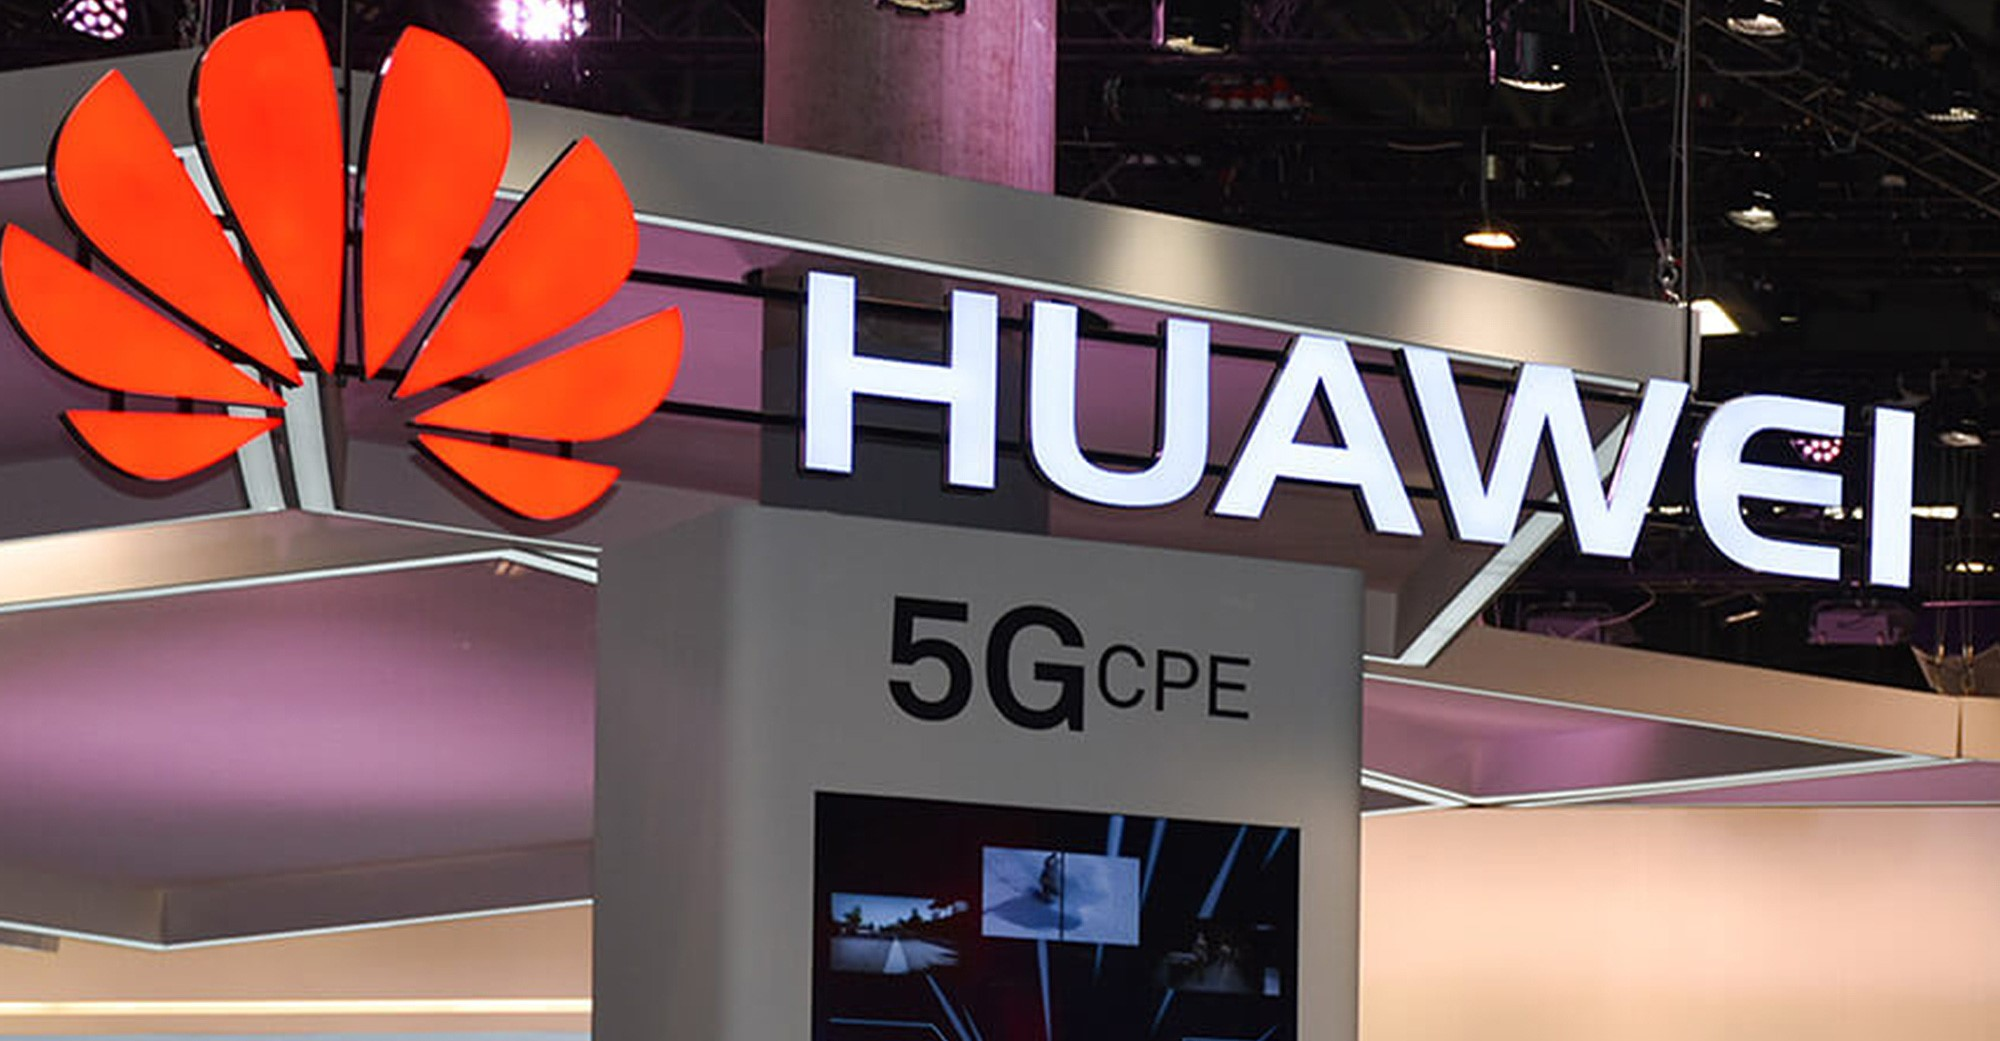 Huawei to launch two new 5G products this year - Huawei Central